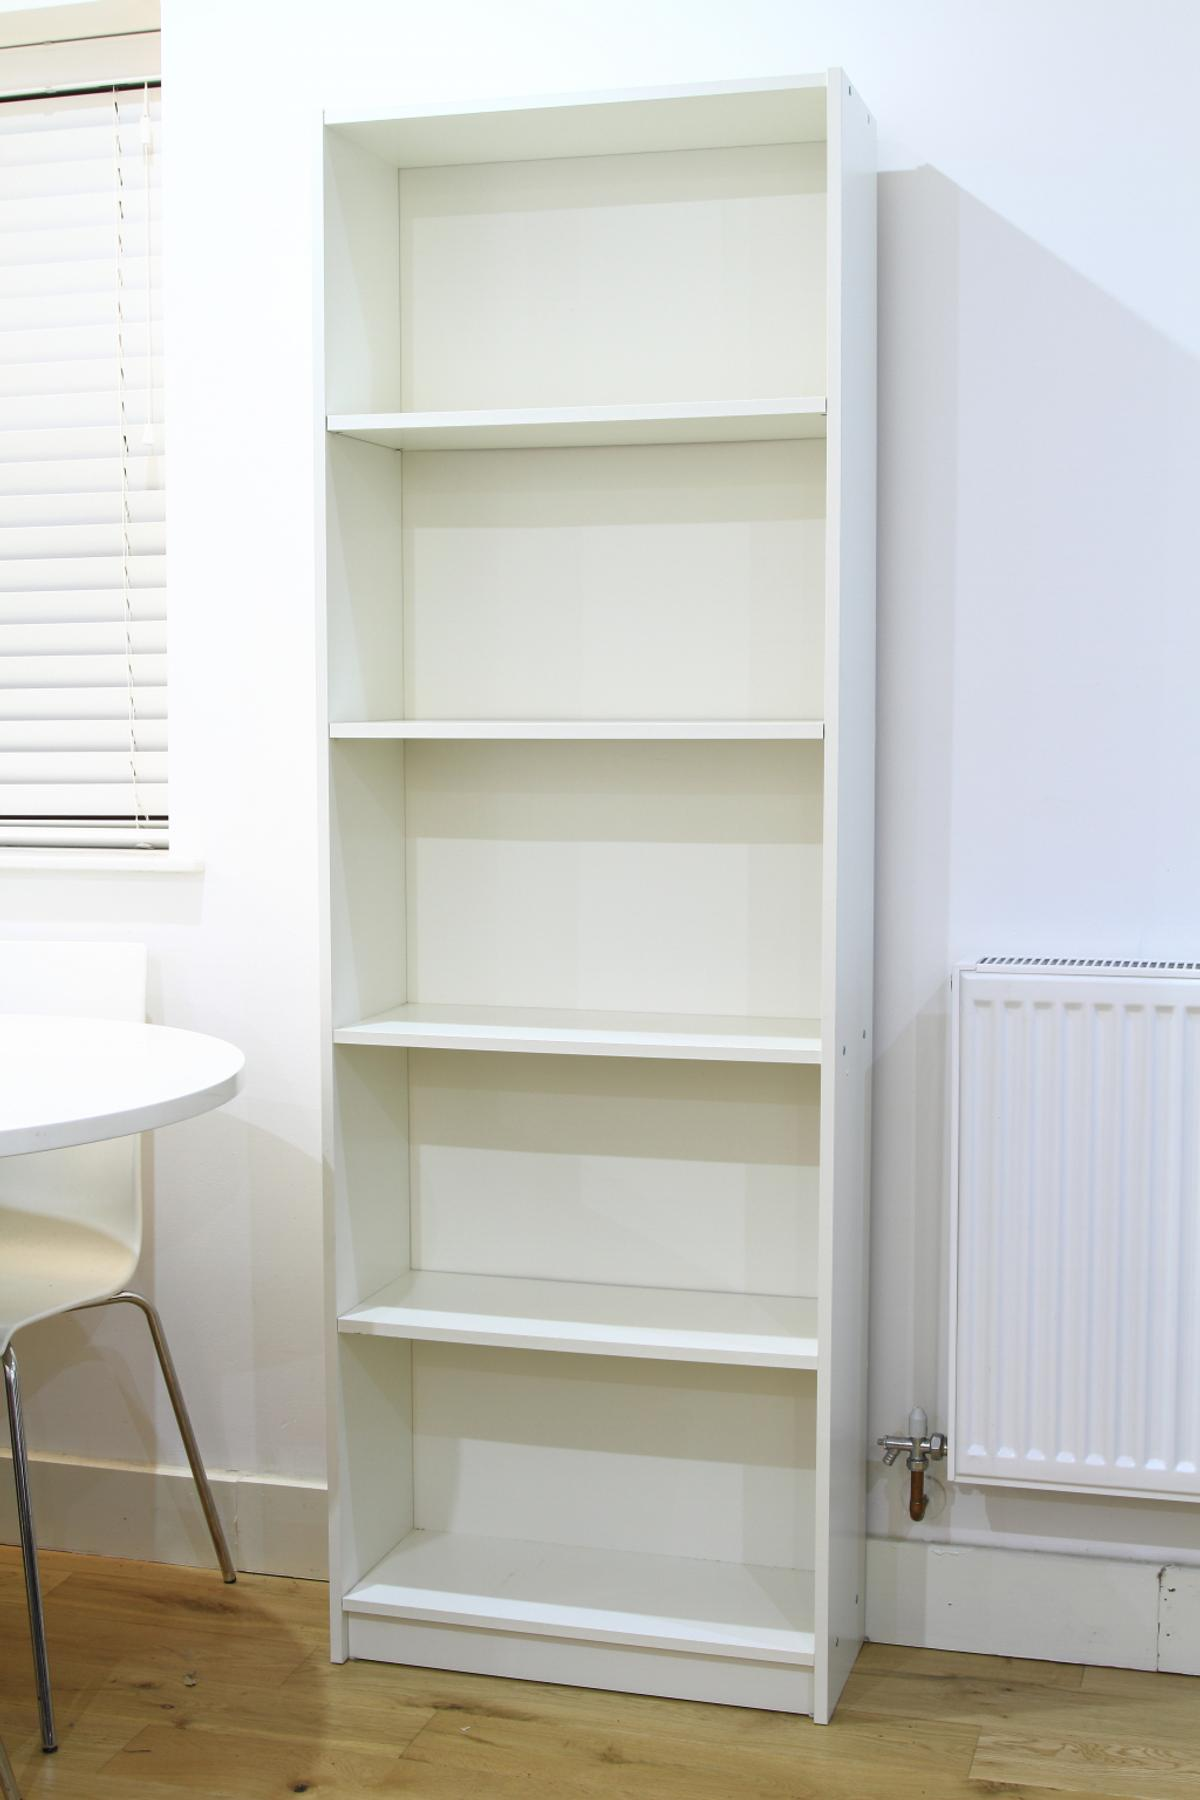 Ikea Gersby Bookcase White 60x180 Cm In Sk9 Wilmslow For 10 00